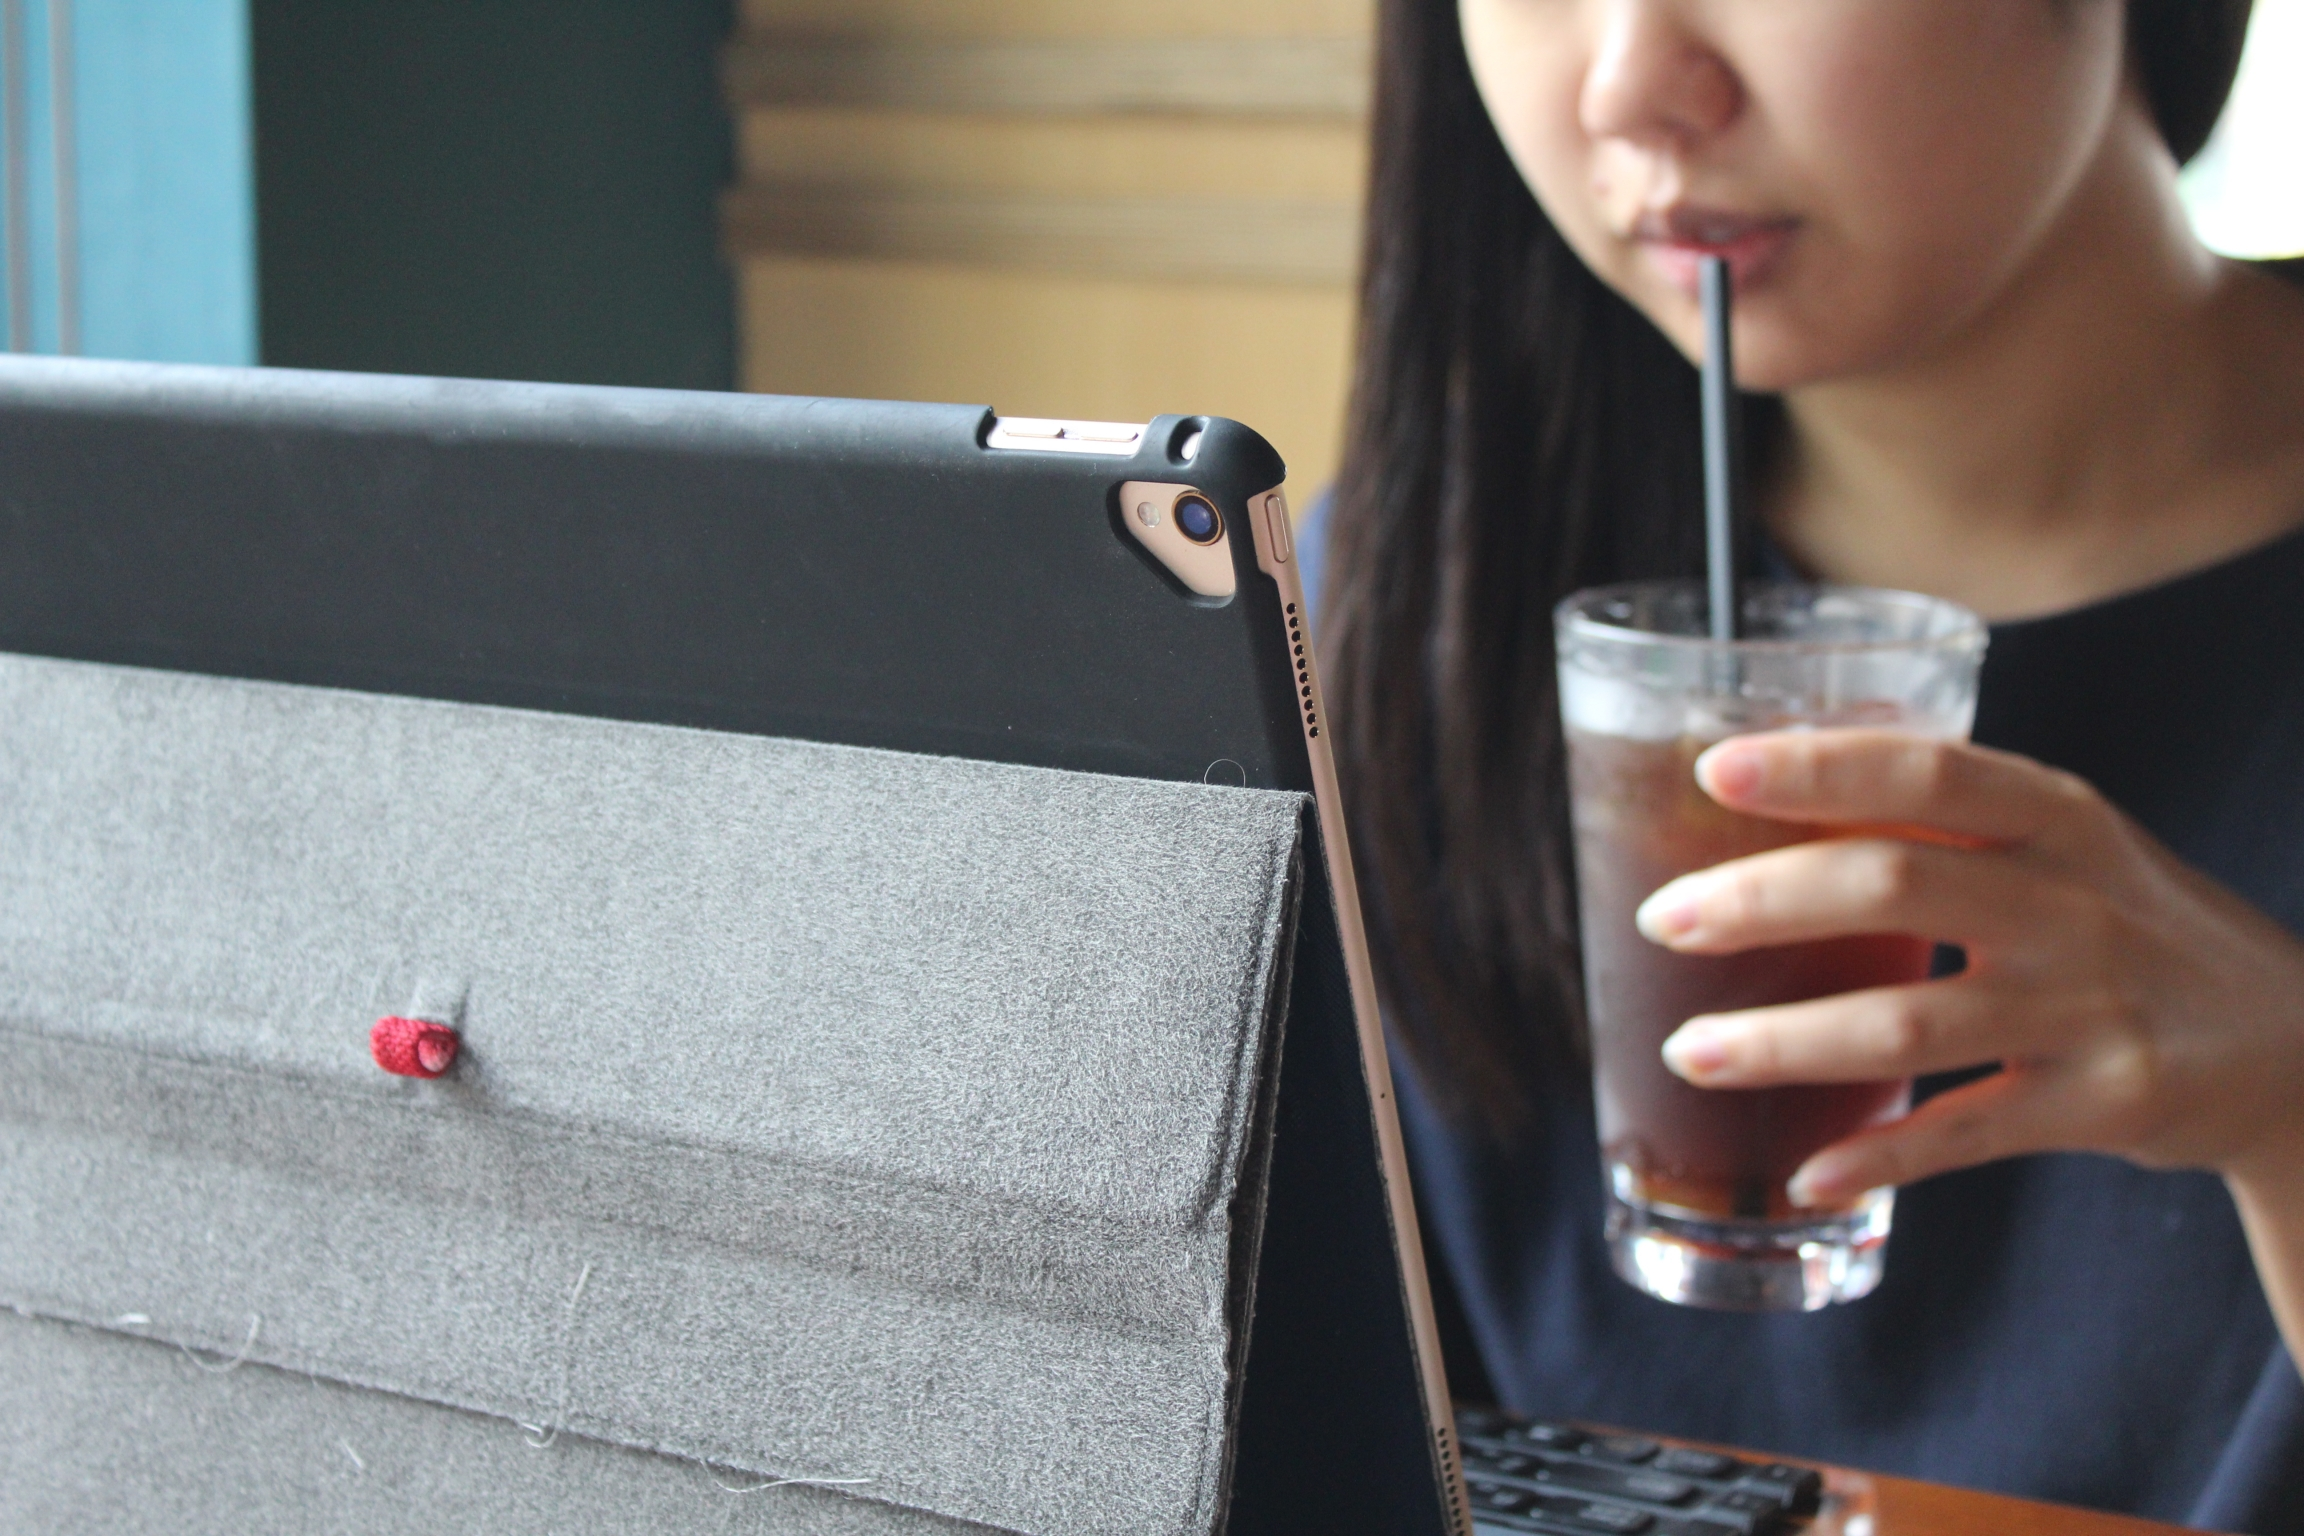 A woman sips a cold drink while looking at her laptop screen